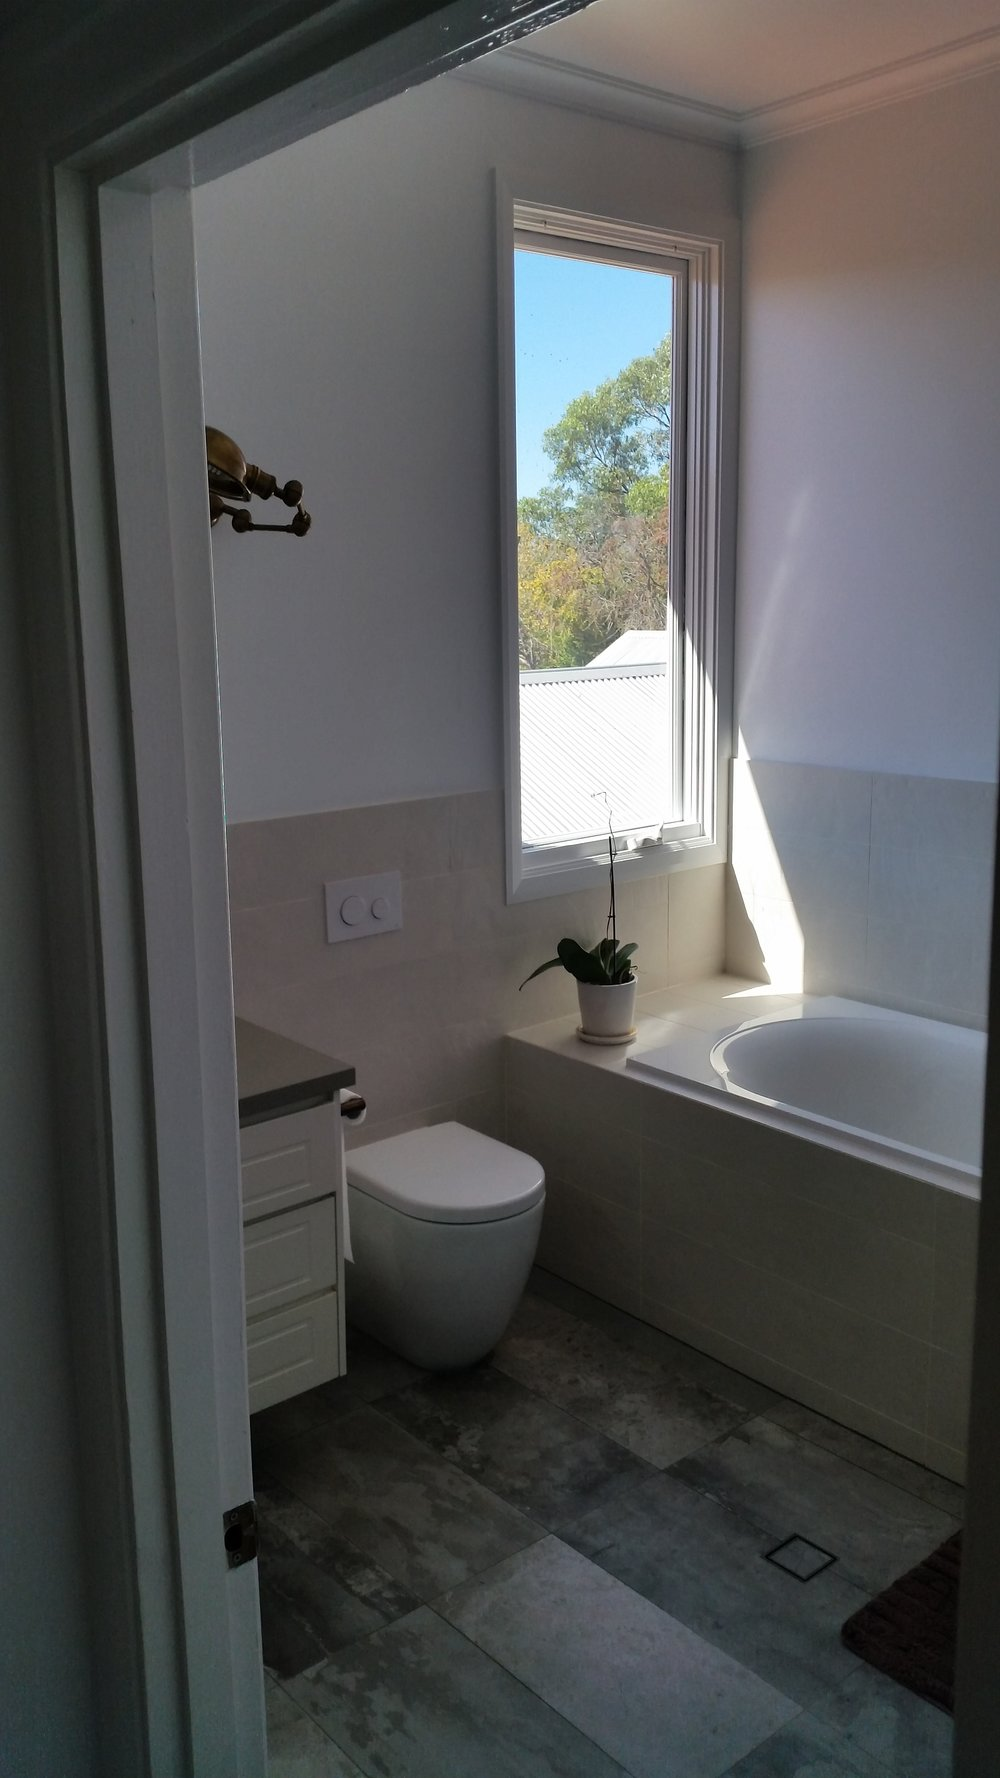 Bathroom renovation after - New window + bath